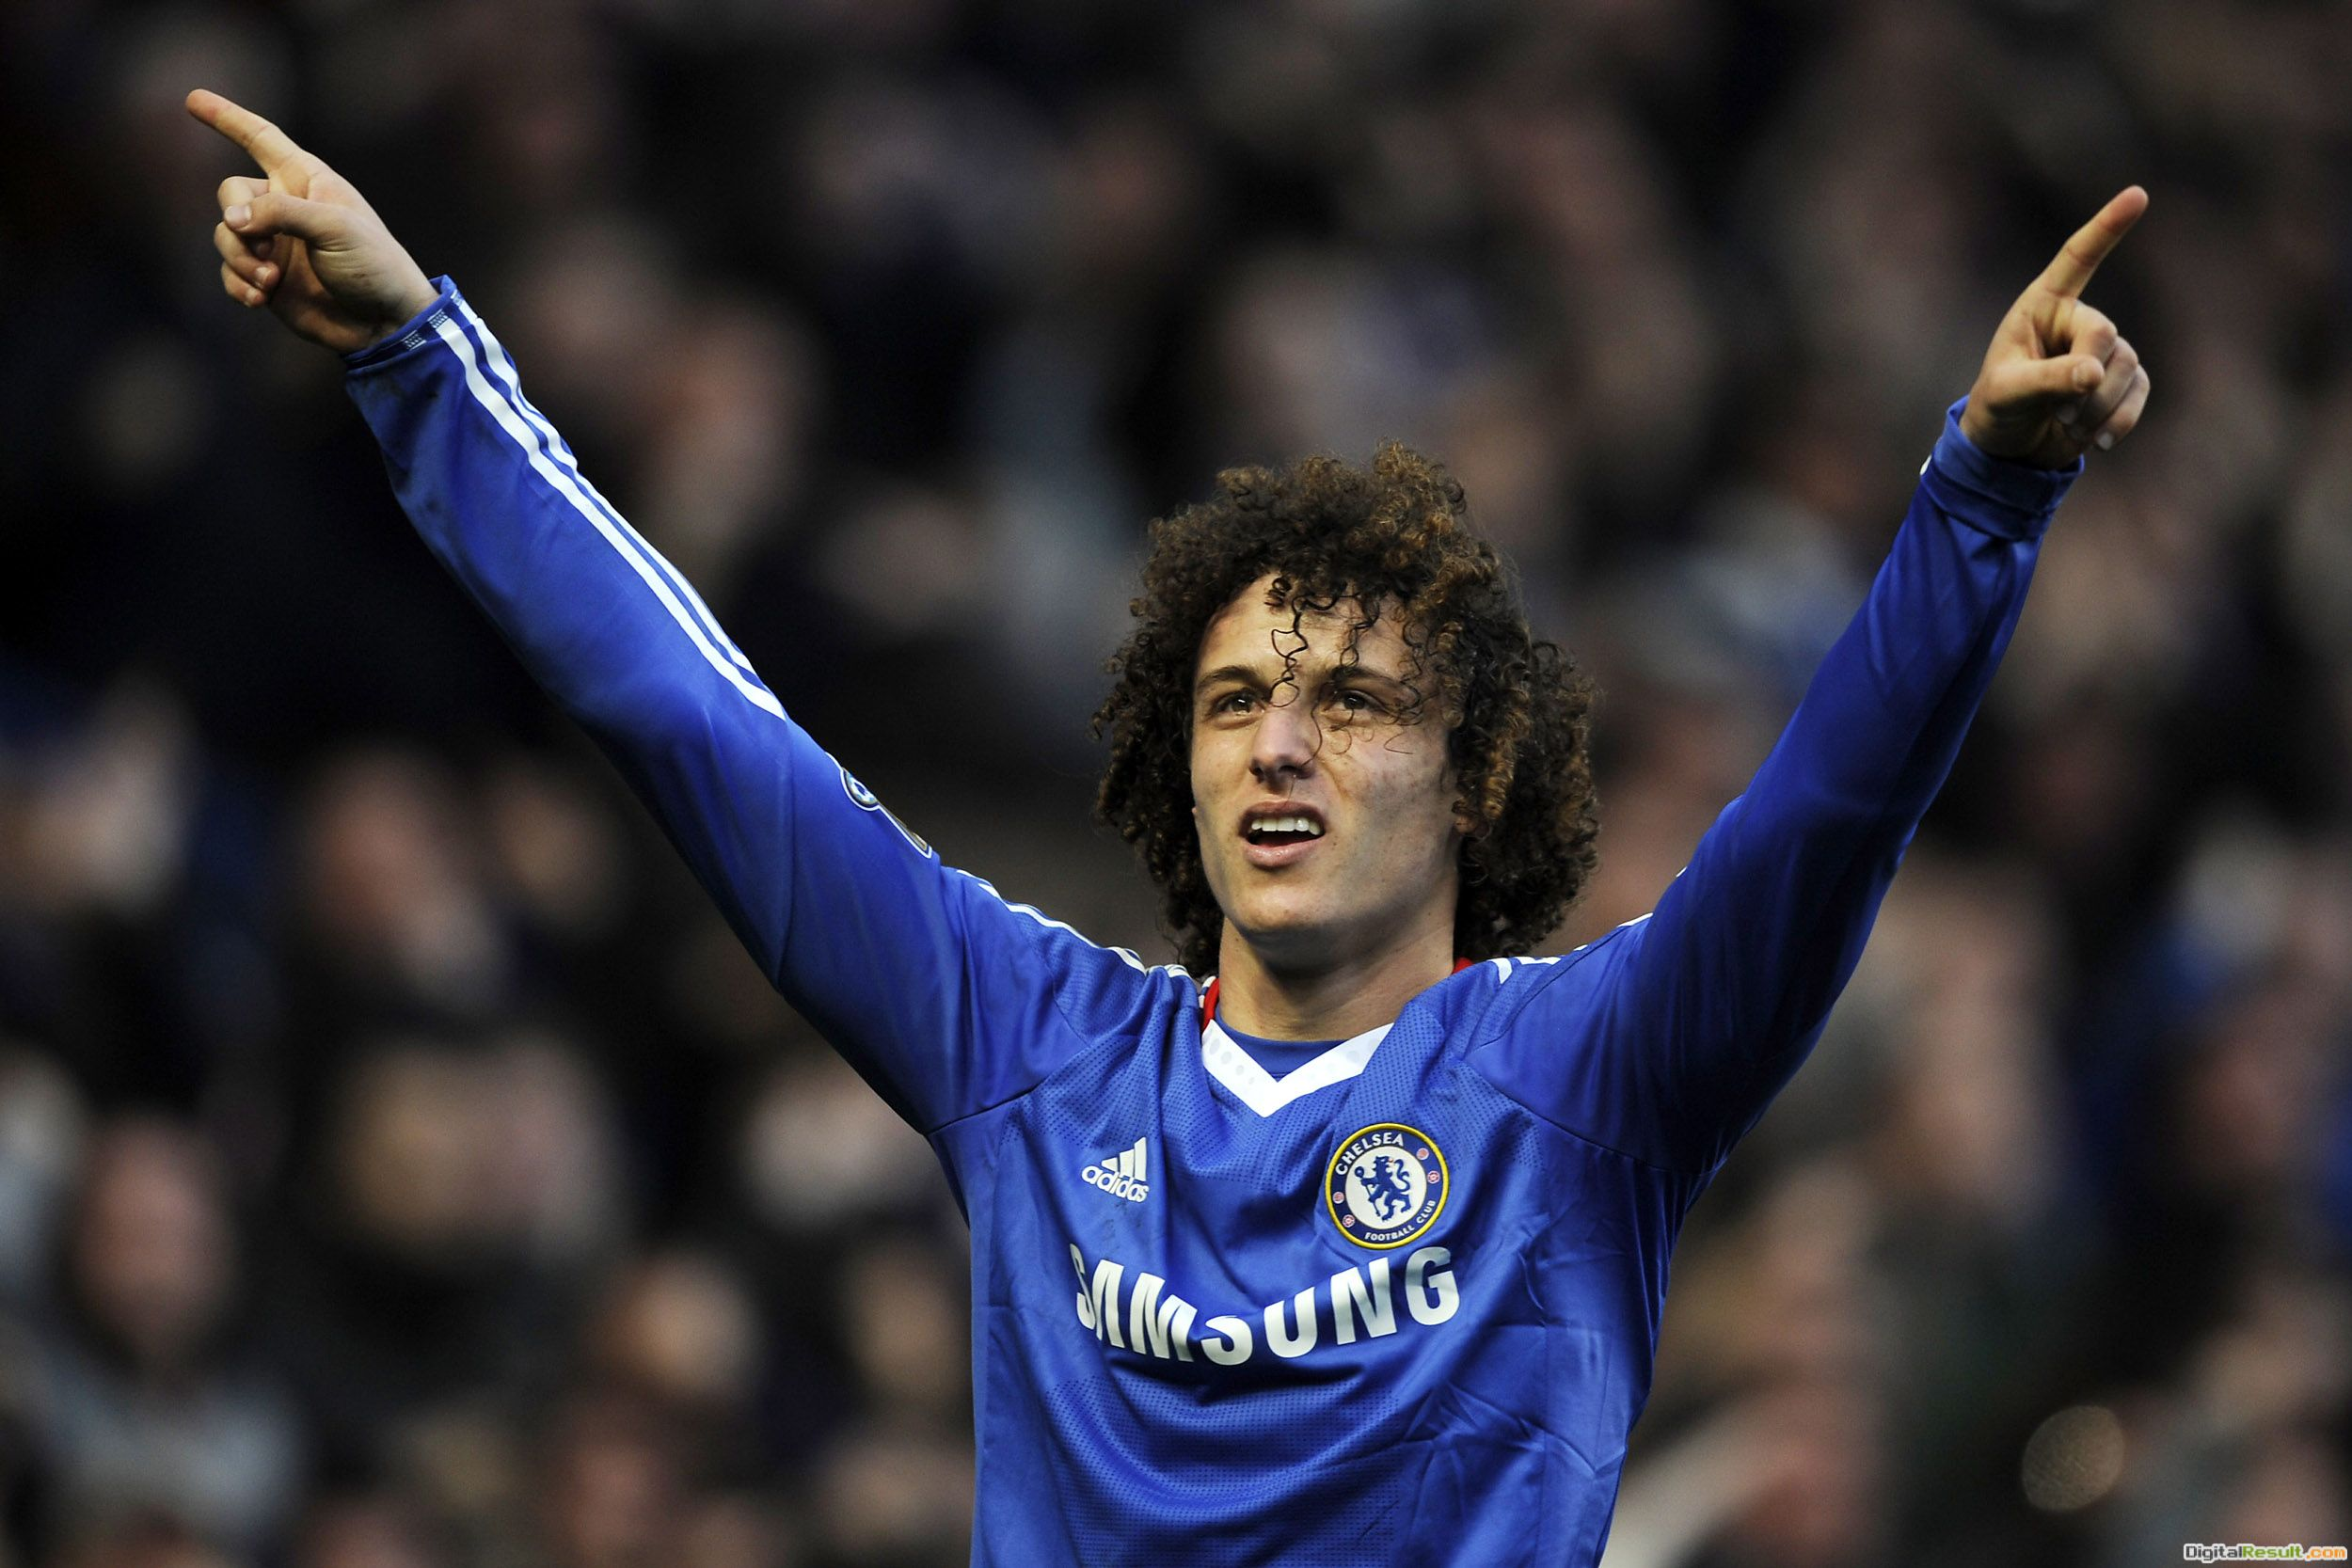 Fonds d\'écran David Luiz : tous les wallpapers David Luiz 106